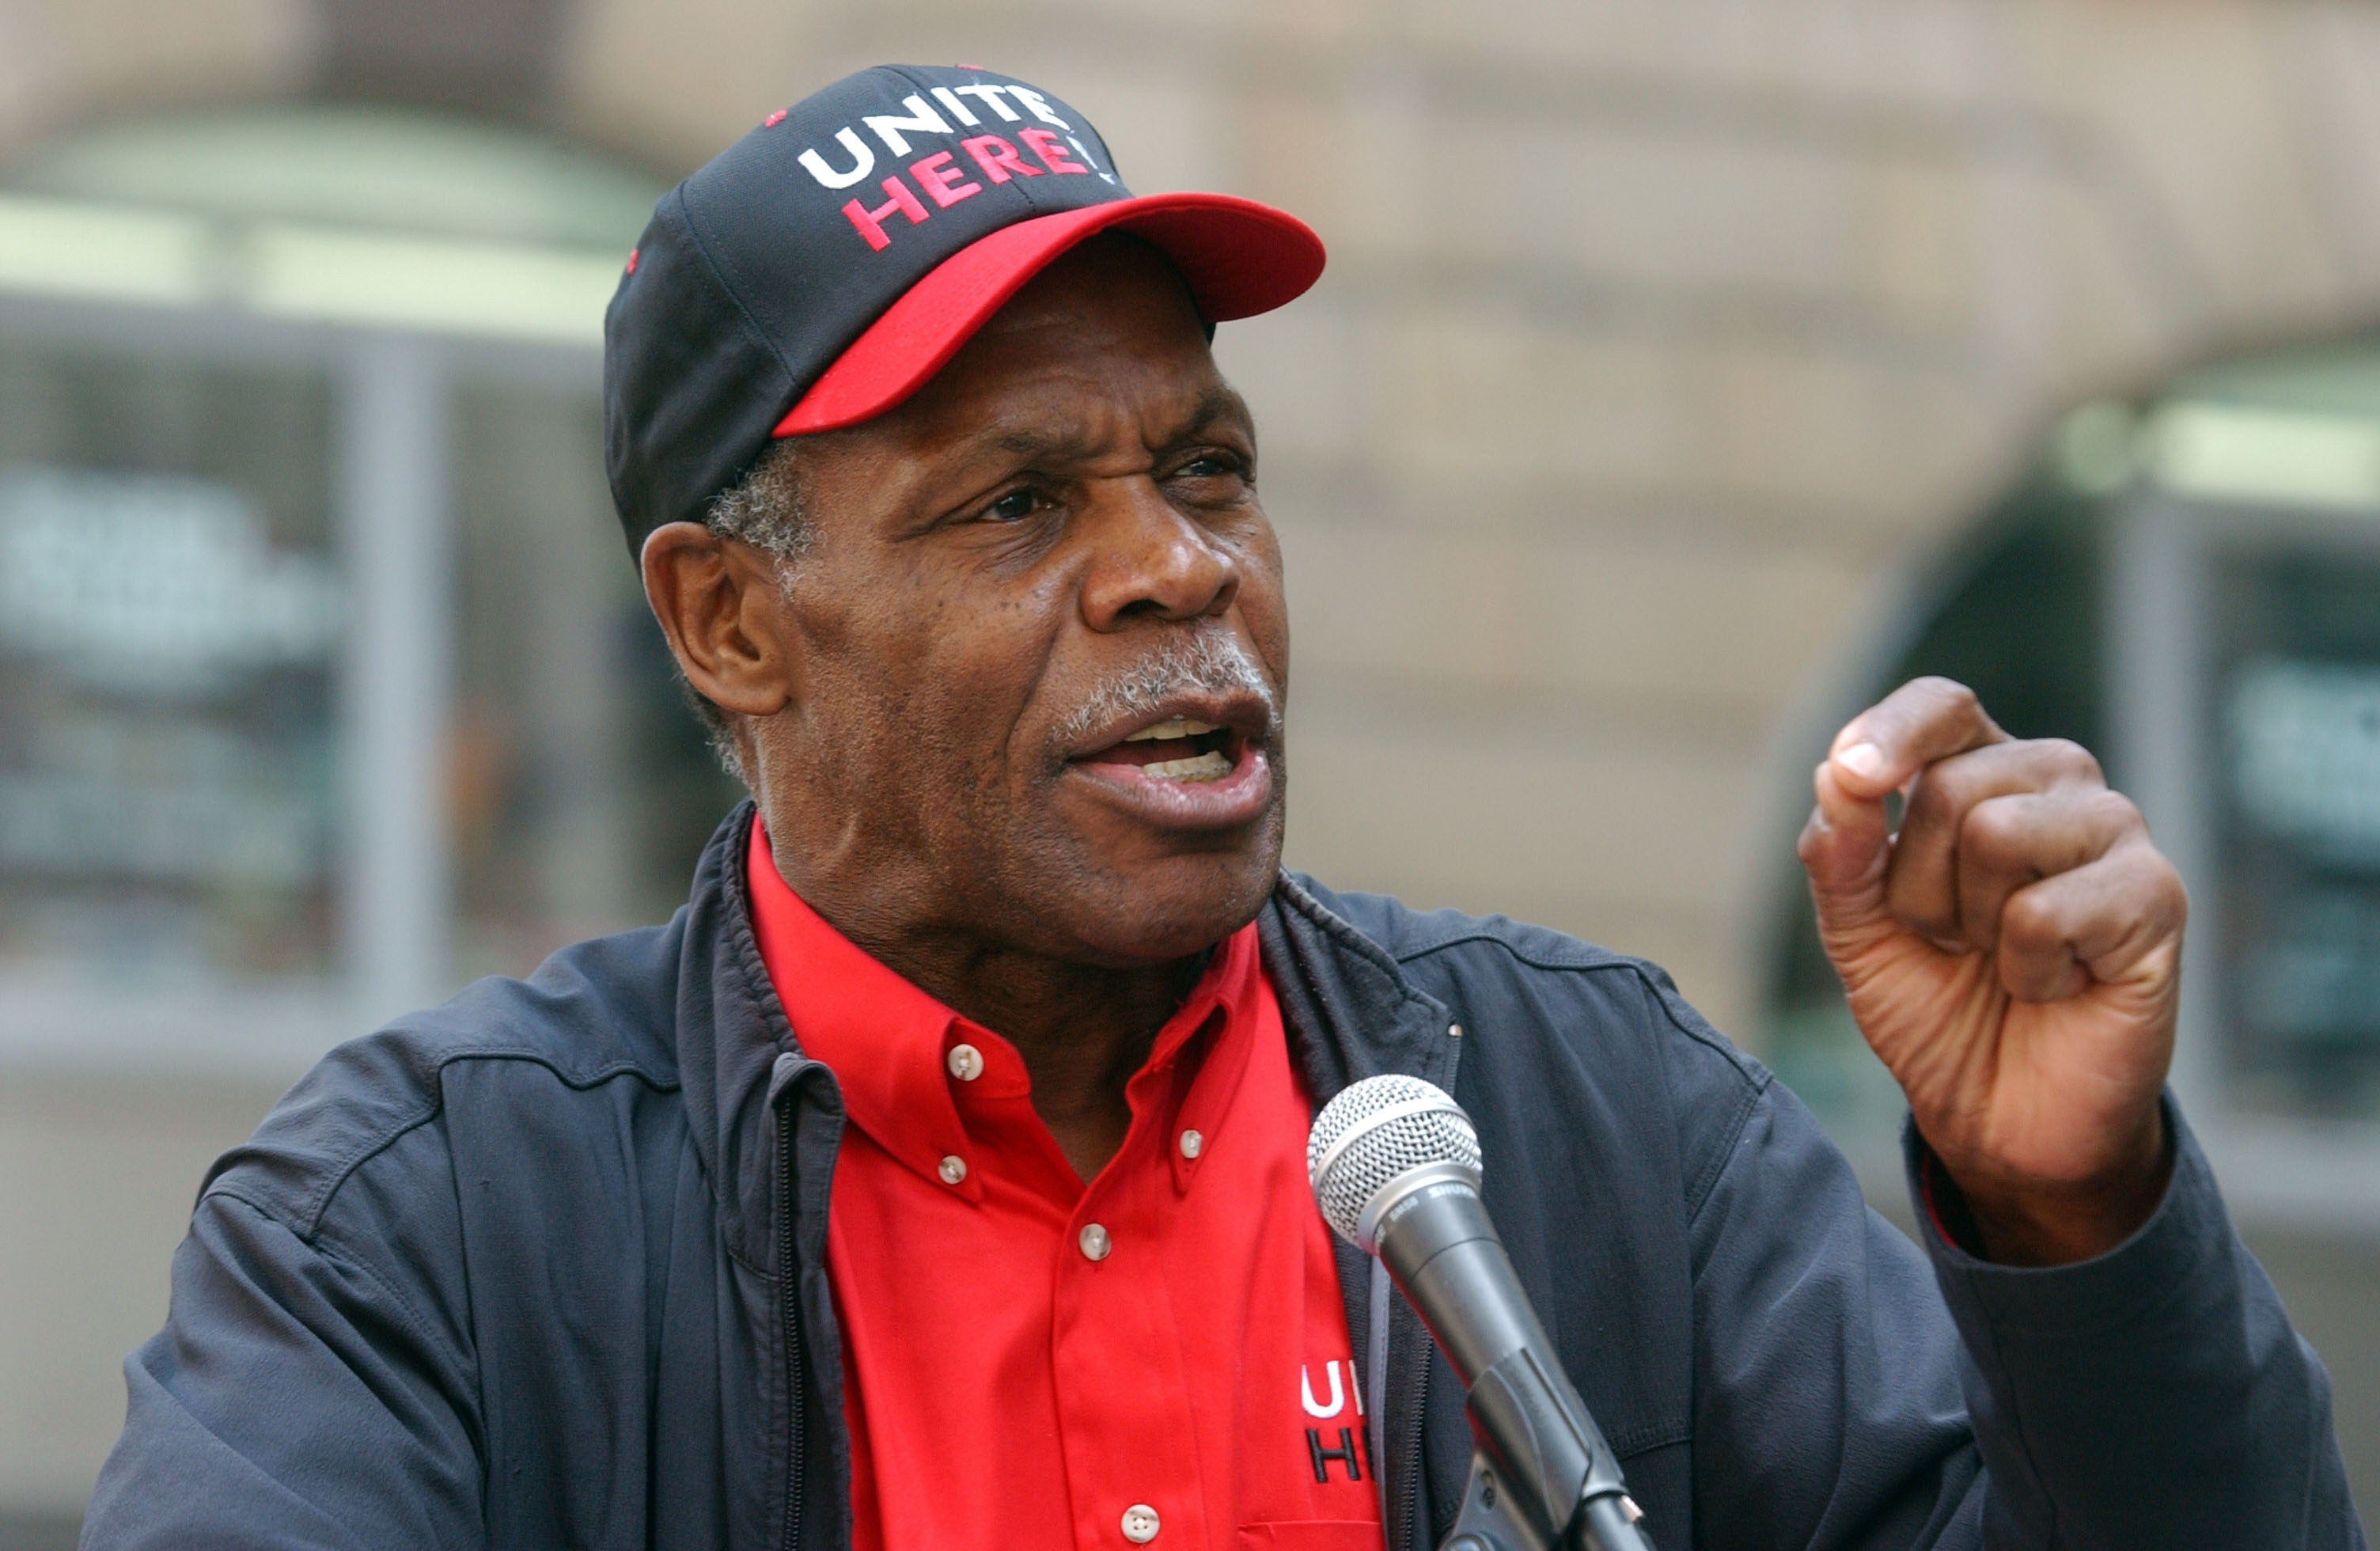 USA - May Day - Danny Glover at New York Rally